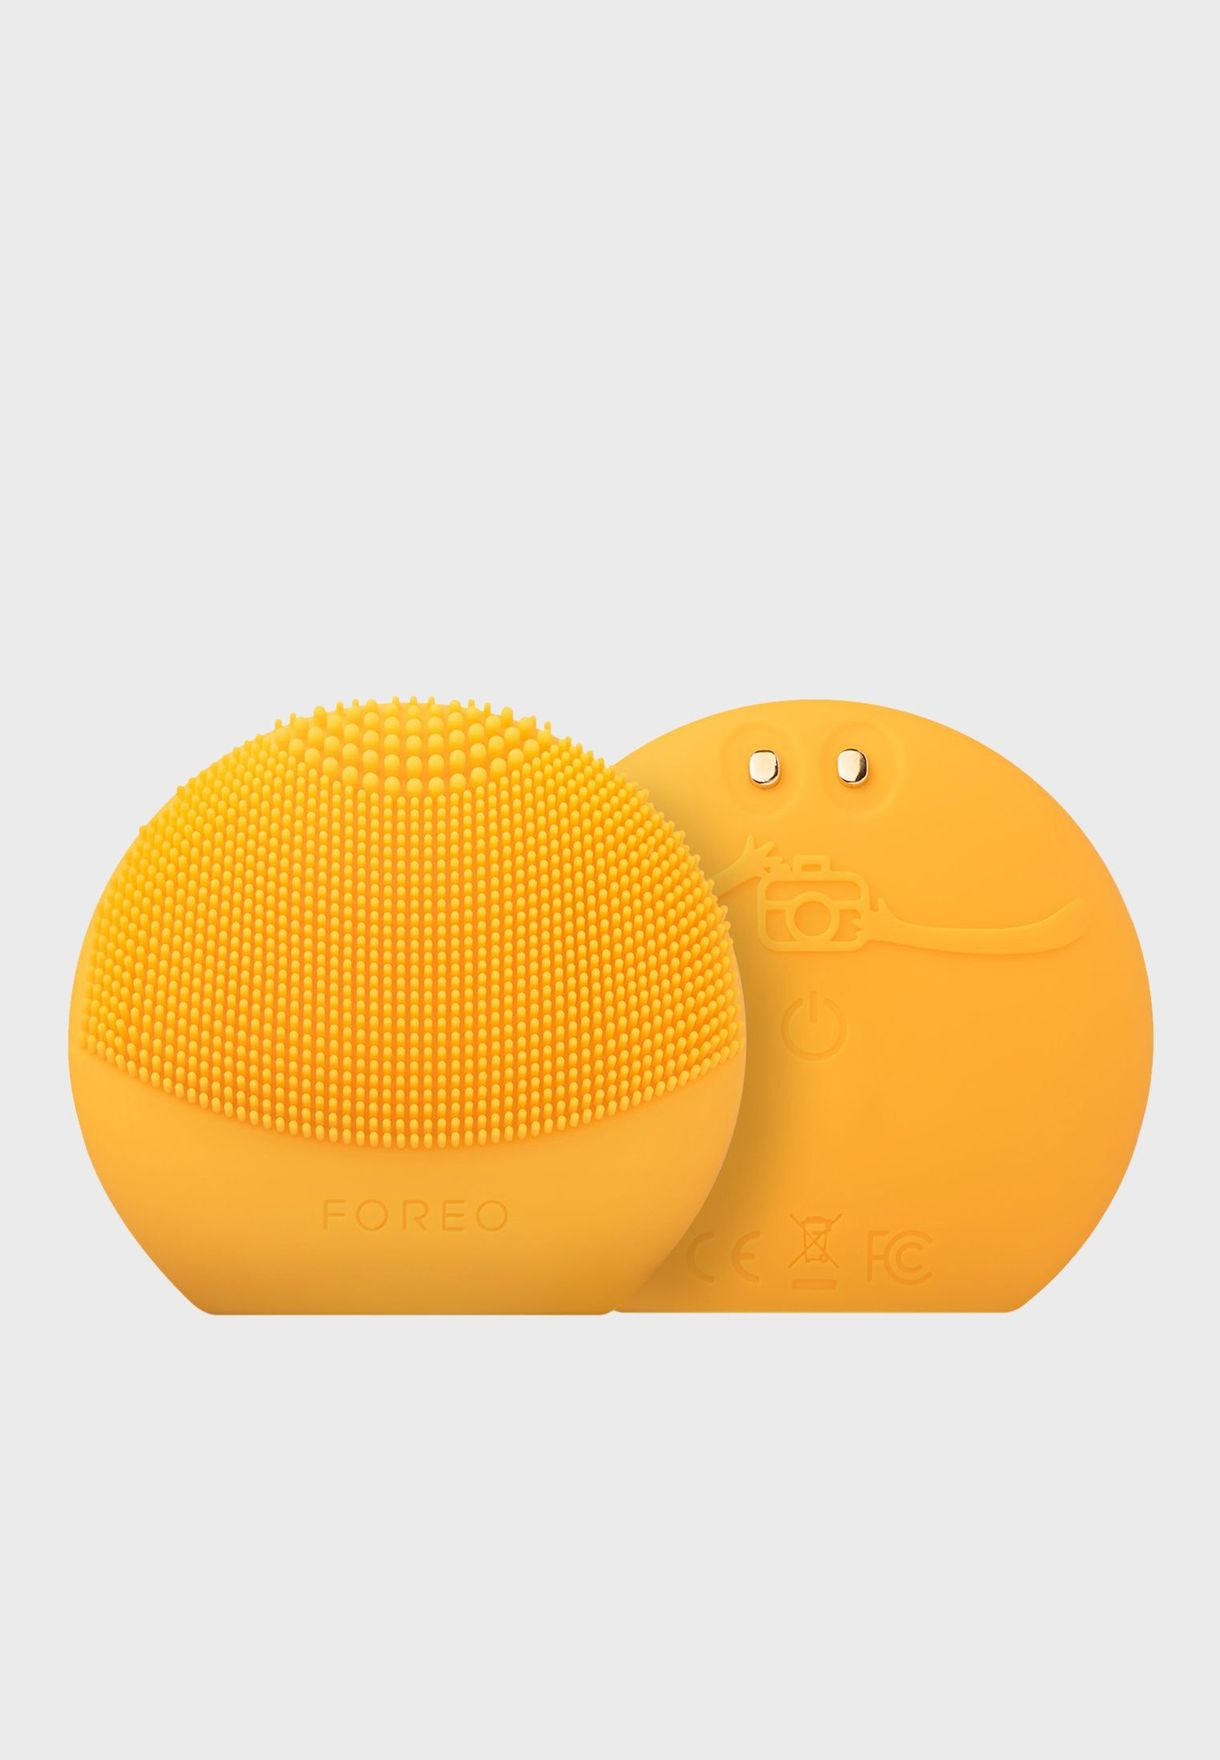 LUNA Fofo Facial Cleansing Brush - Sunflower